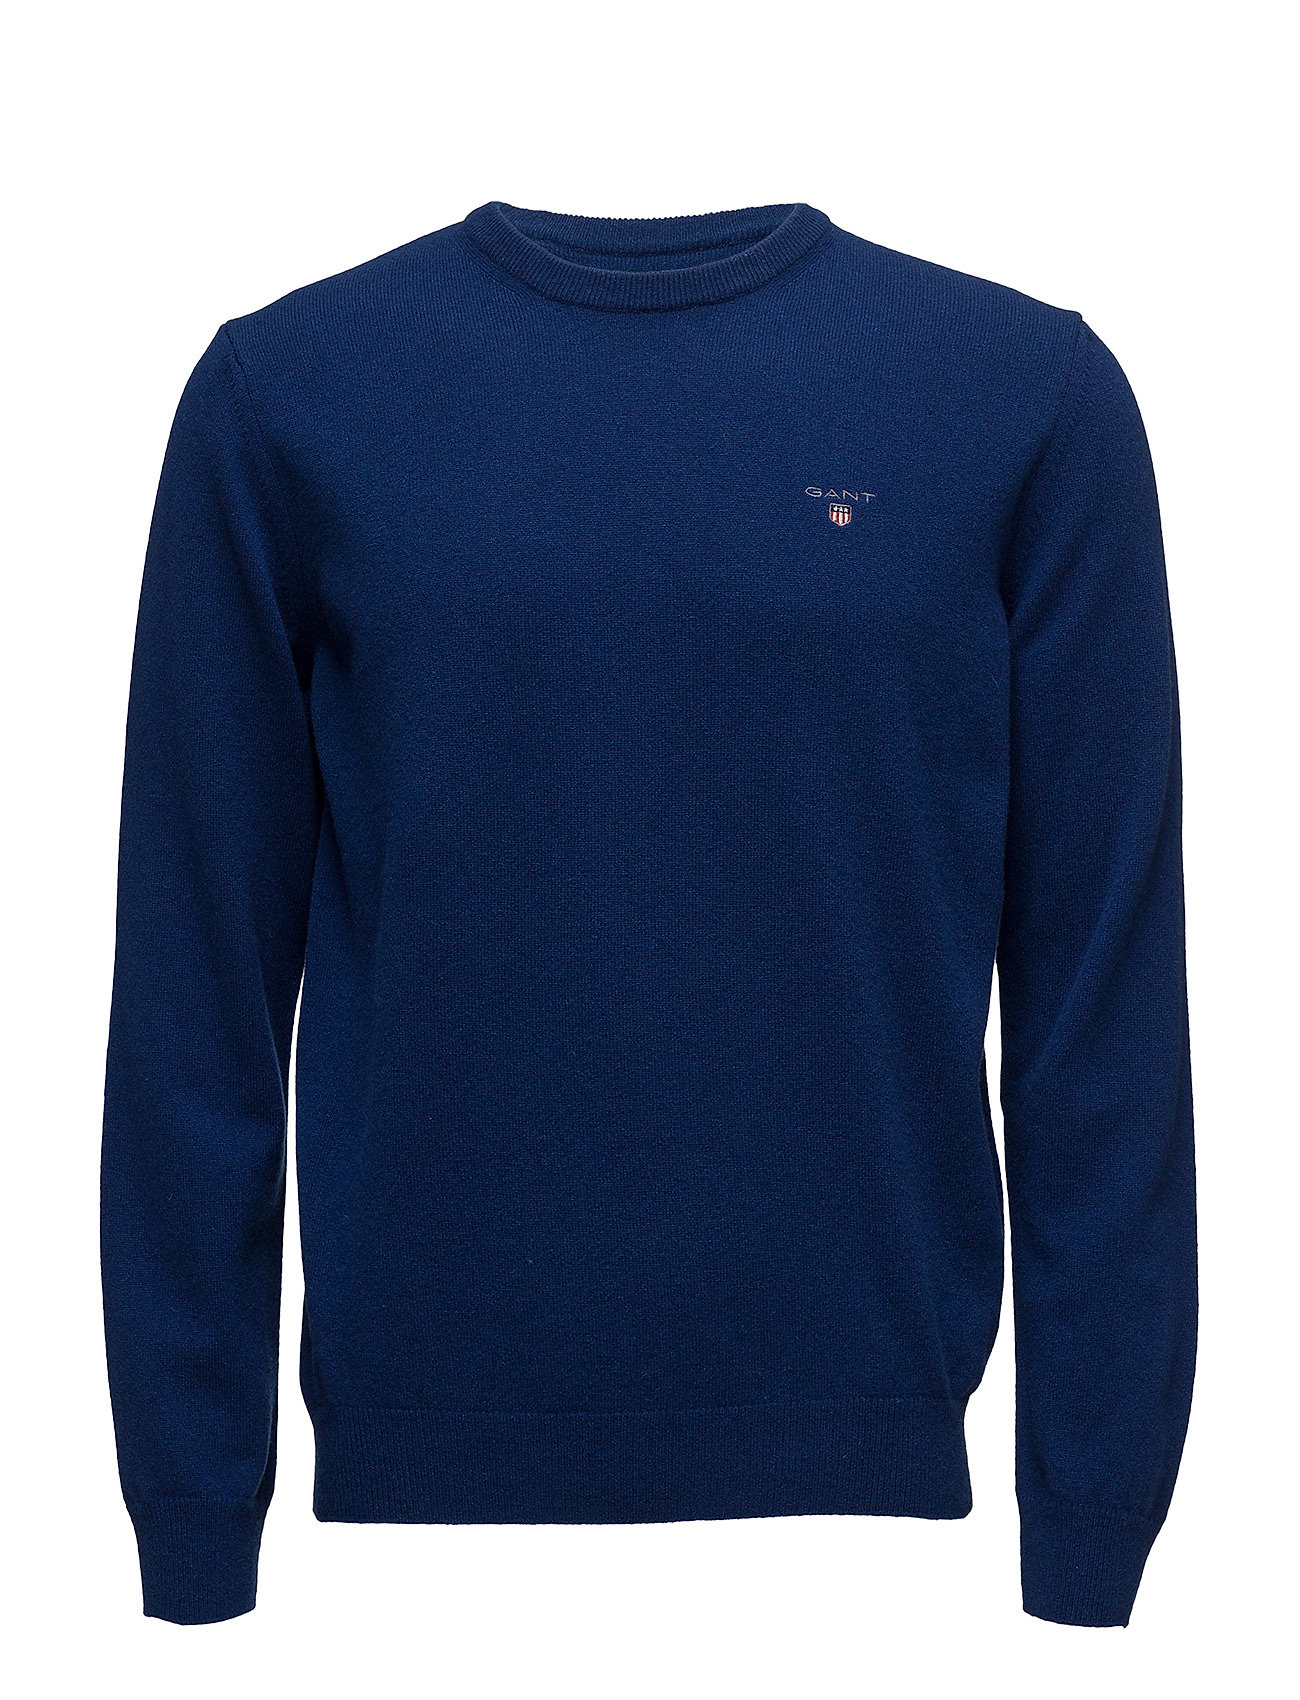 Gant SUPERFINE LAMBSWOOL CREW - YALE BLUE